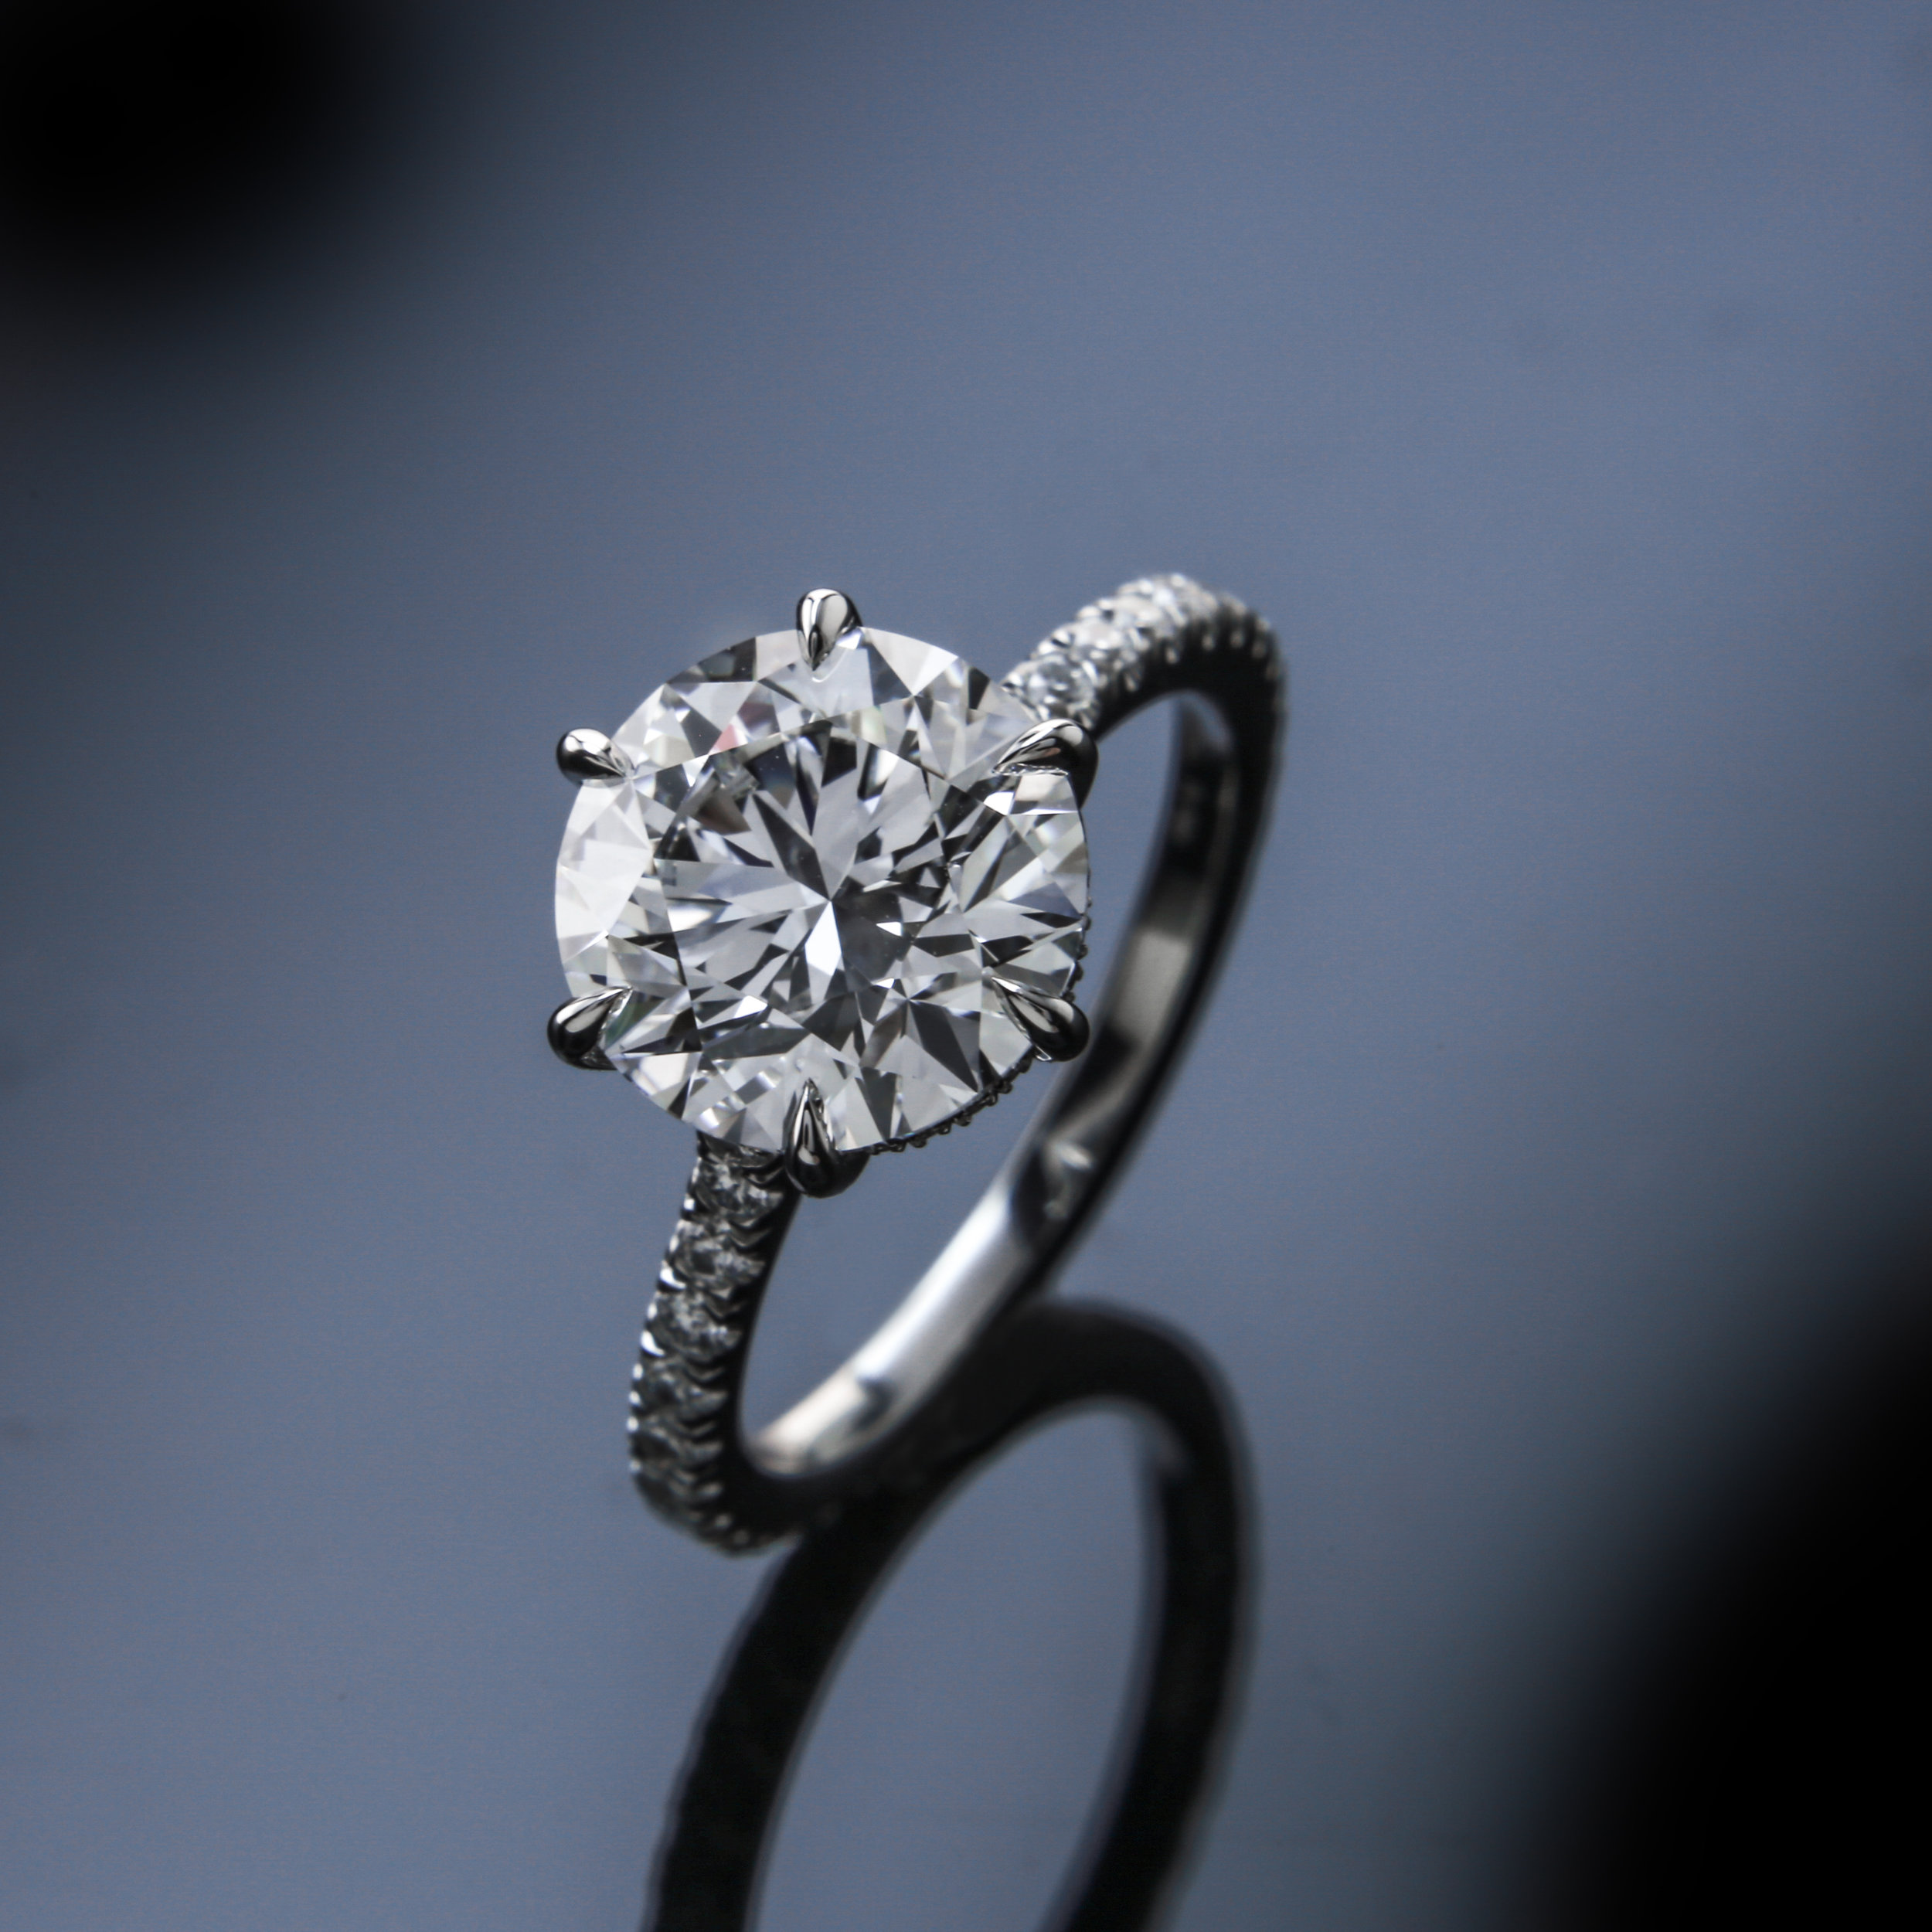 2017 Engagement Ring Trends featuring Black by Brian Gavin